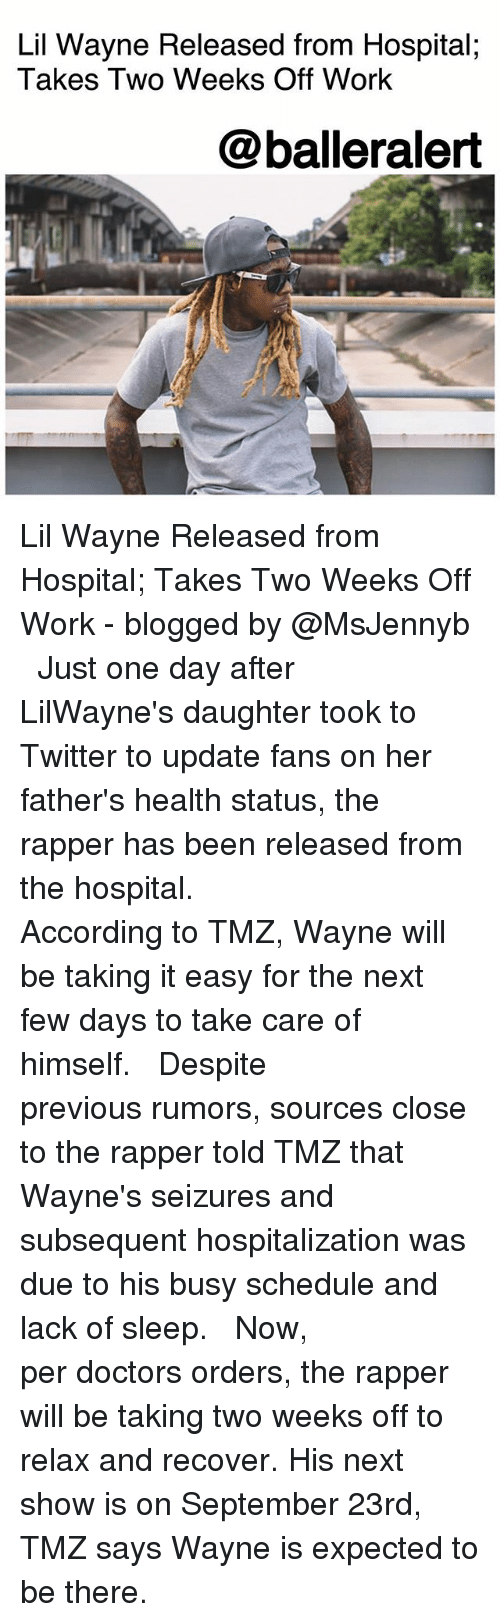 Lil Wayne, Memes, and Twitter: Lil Wayne Released from Hospital;  Takes Two Weeks Off Work  @balleralert Lil Wayne Released from Hospital; Takes Two Weeks Off Work - blogged by @MsJennyb ⠀⠀⠀⠀⠀⠀⠀ ⠀⠀⠀⠀⠀⠀⠀ Just one day after LilWayne's daughter took to Twitter to update fans on her father's health status, the rapper has been released from the hospital. ⠀⠀⠀⠀⠀⠀⠀ ⠀⠀⠀⠀⠀⠀⠀ According to TMZ, Wayne will be taking it easy for the next few days to take care of himself. ⠀⠀⠀⠀⠀⠀⠀ ⠀⠀⠀⠀⠀⠀⠀ Despite previous rumors, sources close to the rapper told TMZ that Wayne's seizures and subsequent hospitalization was due to his busy schedule and lack of sleep. ⠀⠀⠀⠀⠀⠀⠀ ⠀⠀⠀⠀⠀⠀⠀ Now, per doctors orders, the rapper will be taking two weeks off to relax and recover. His next show is on September 23rd, TMZ says Wayne is expected to be there.